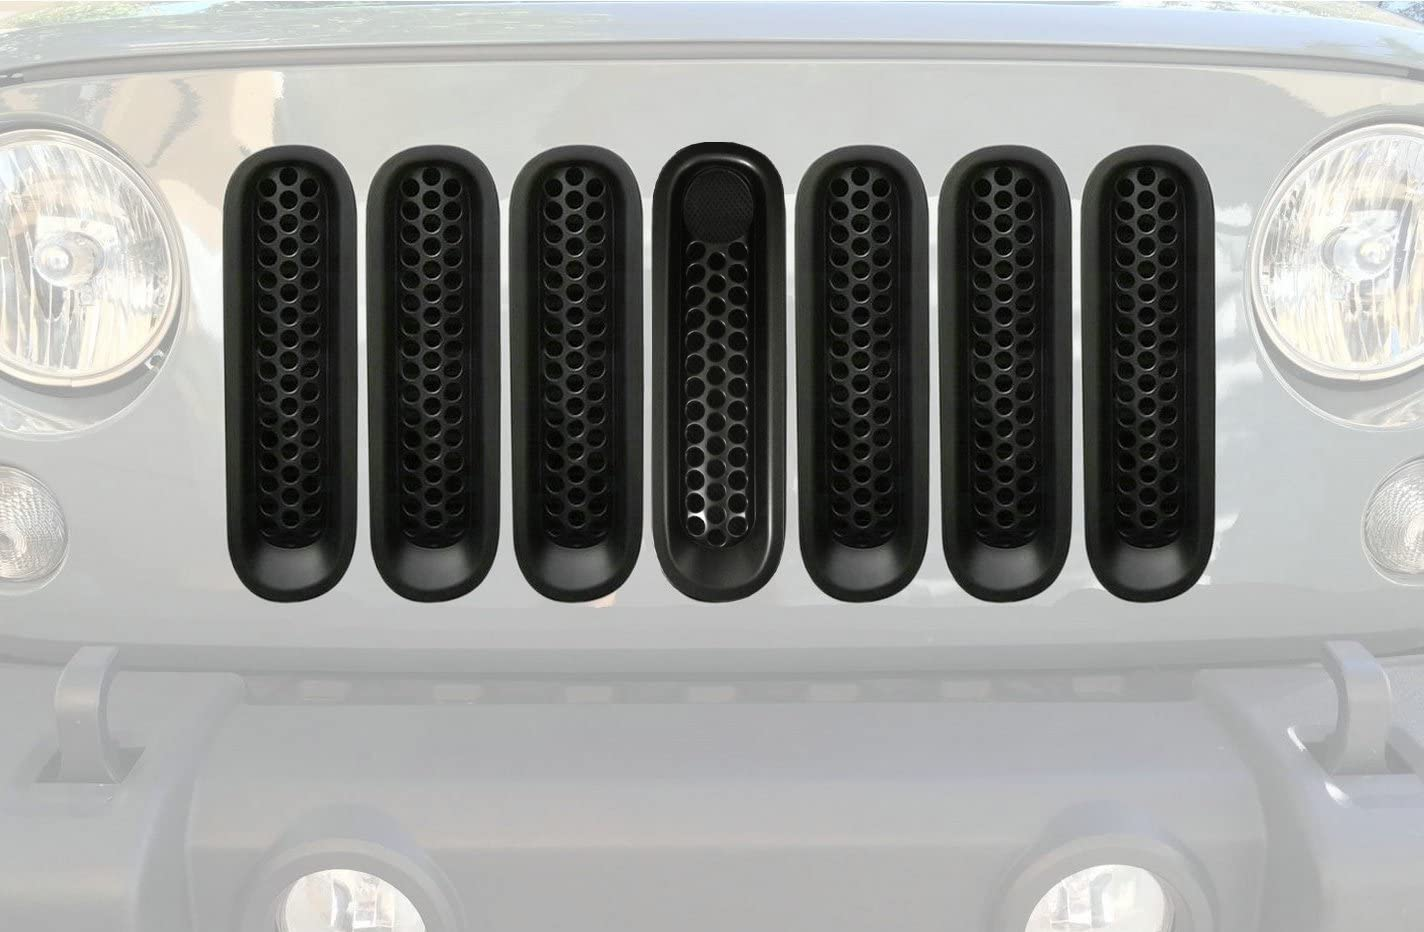 Black, with key hole Bestong 7 Pcs Front Mesh Grille Front Grill Inserts Kit for Jeep Wrangler Rubicon Sahara JK 2007-2017 Upgrade Clip in Version